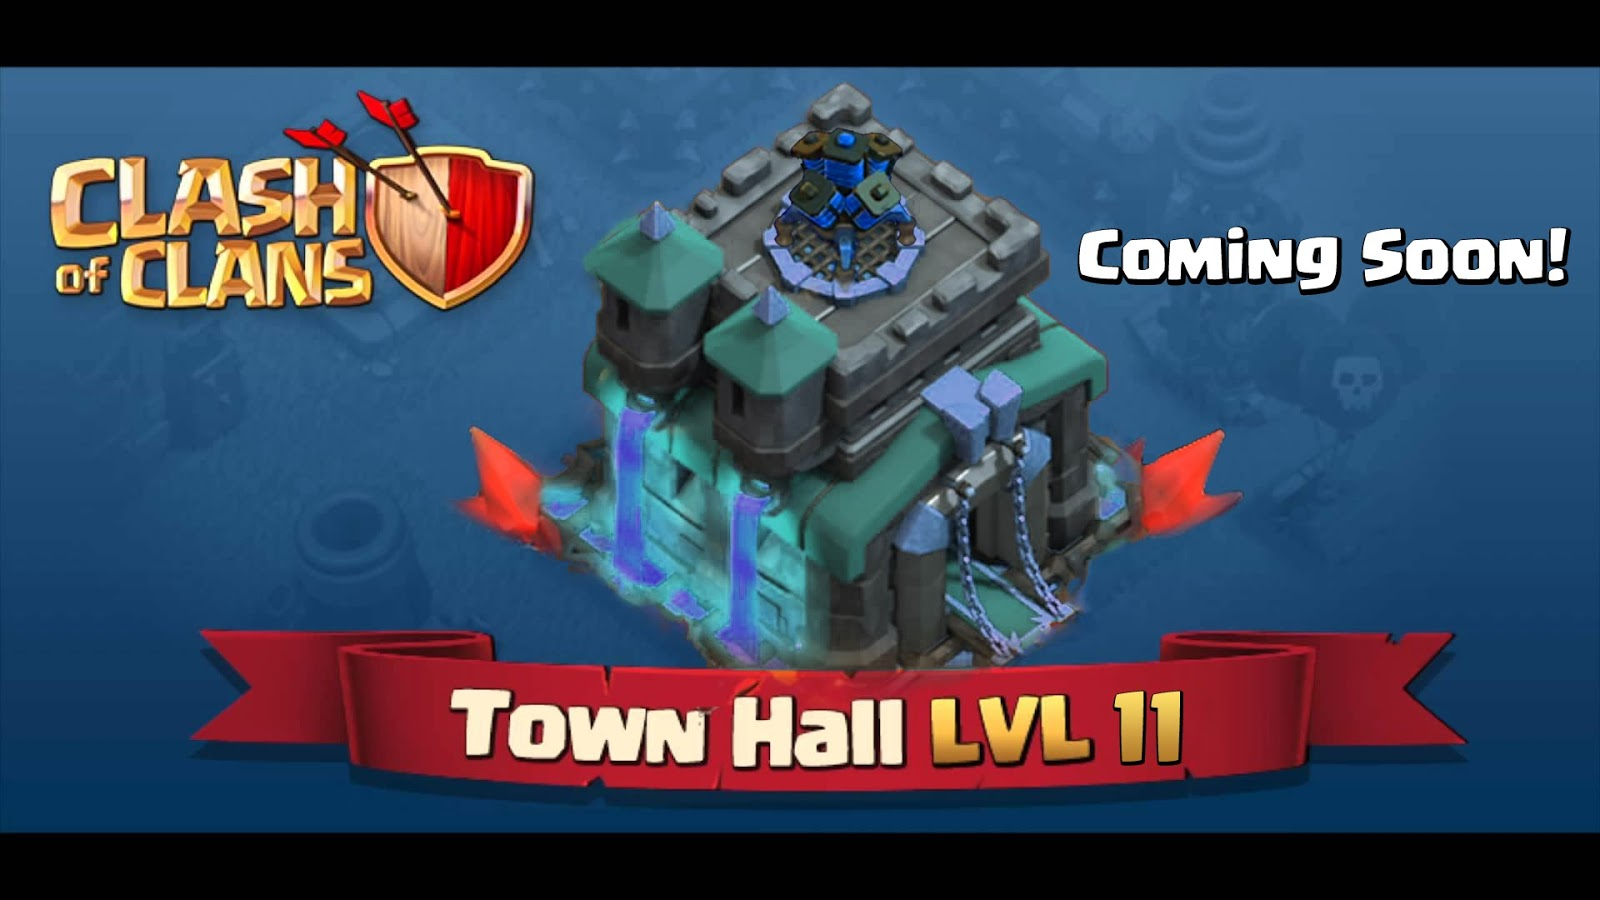 Kunena :: Topic: clash of clans hack download town hall 11 (1/1)